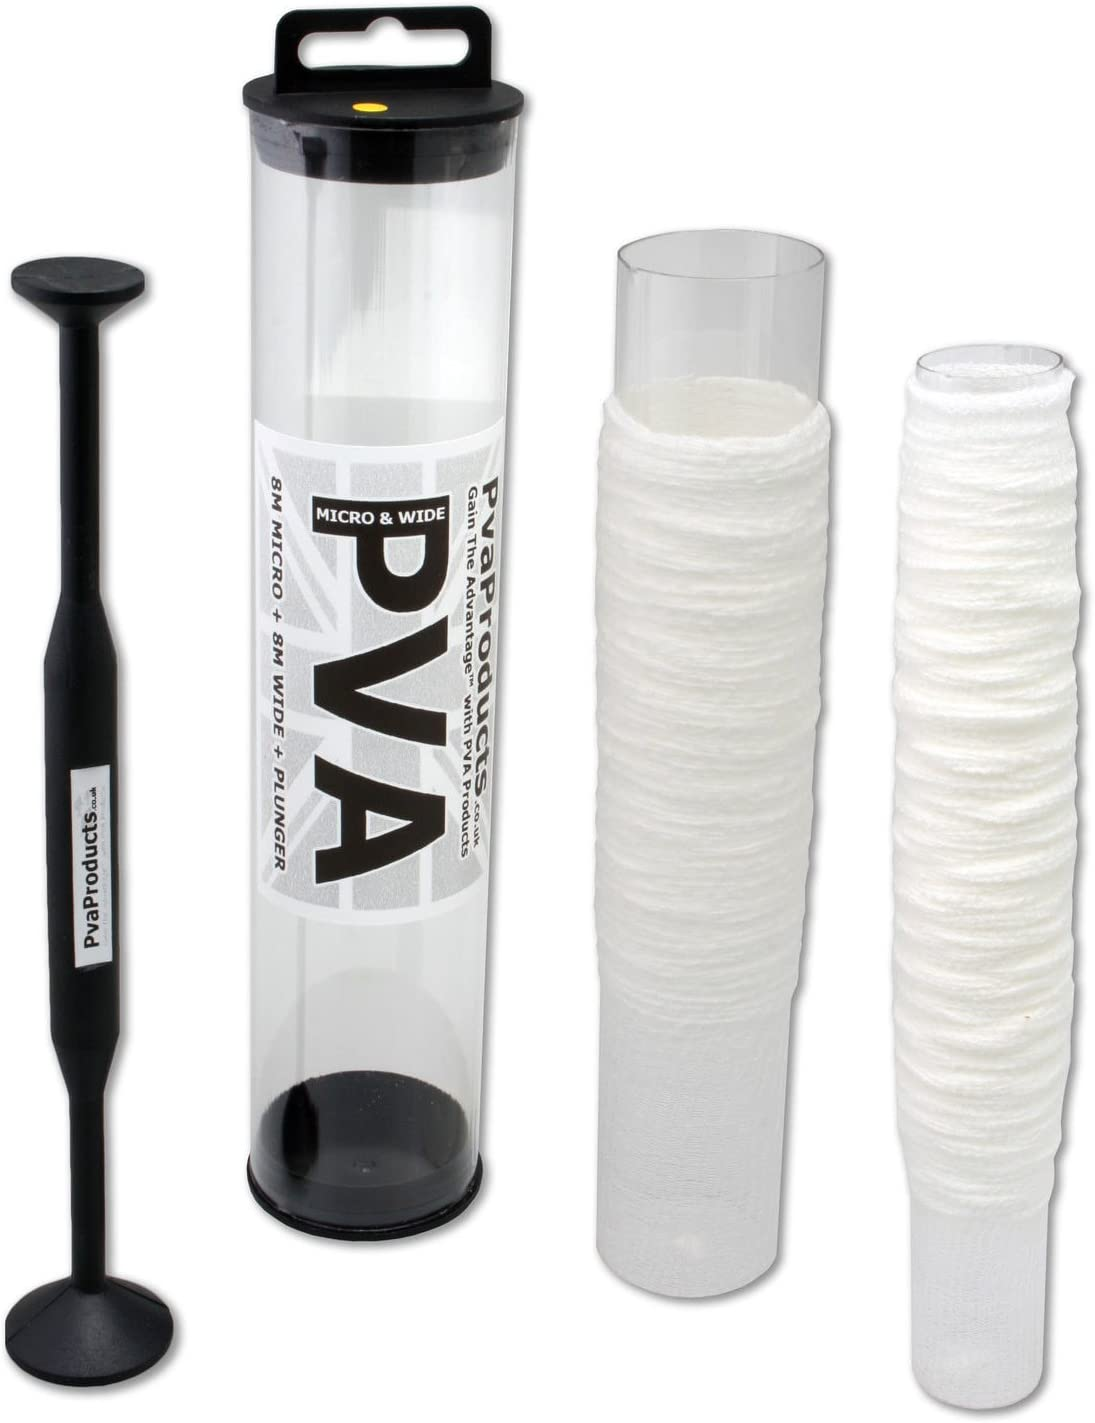 25mm narrow PVA micro mesh 8 metres on a tube includes plunger